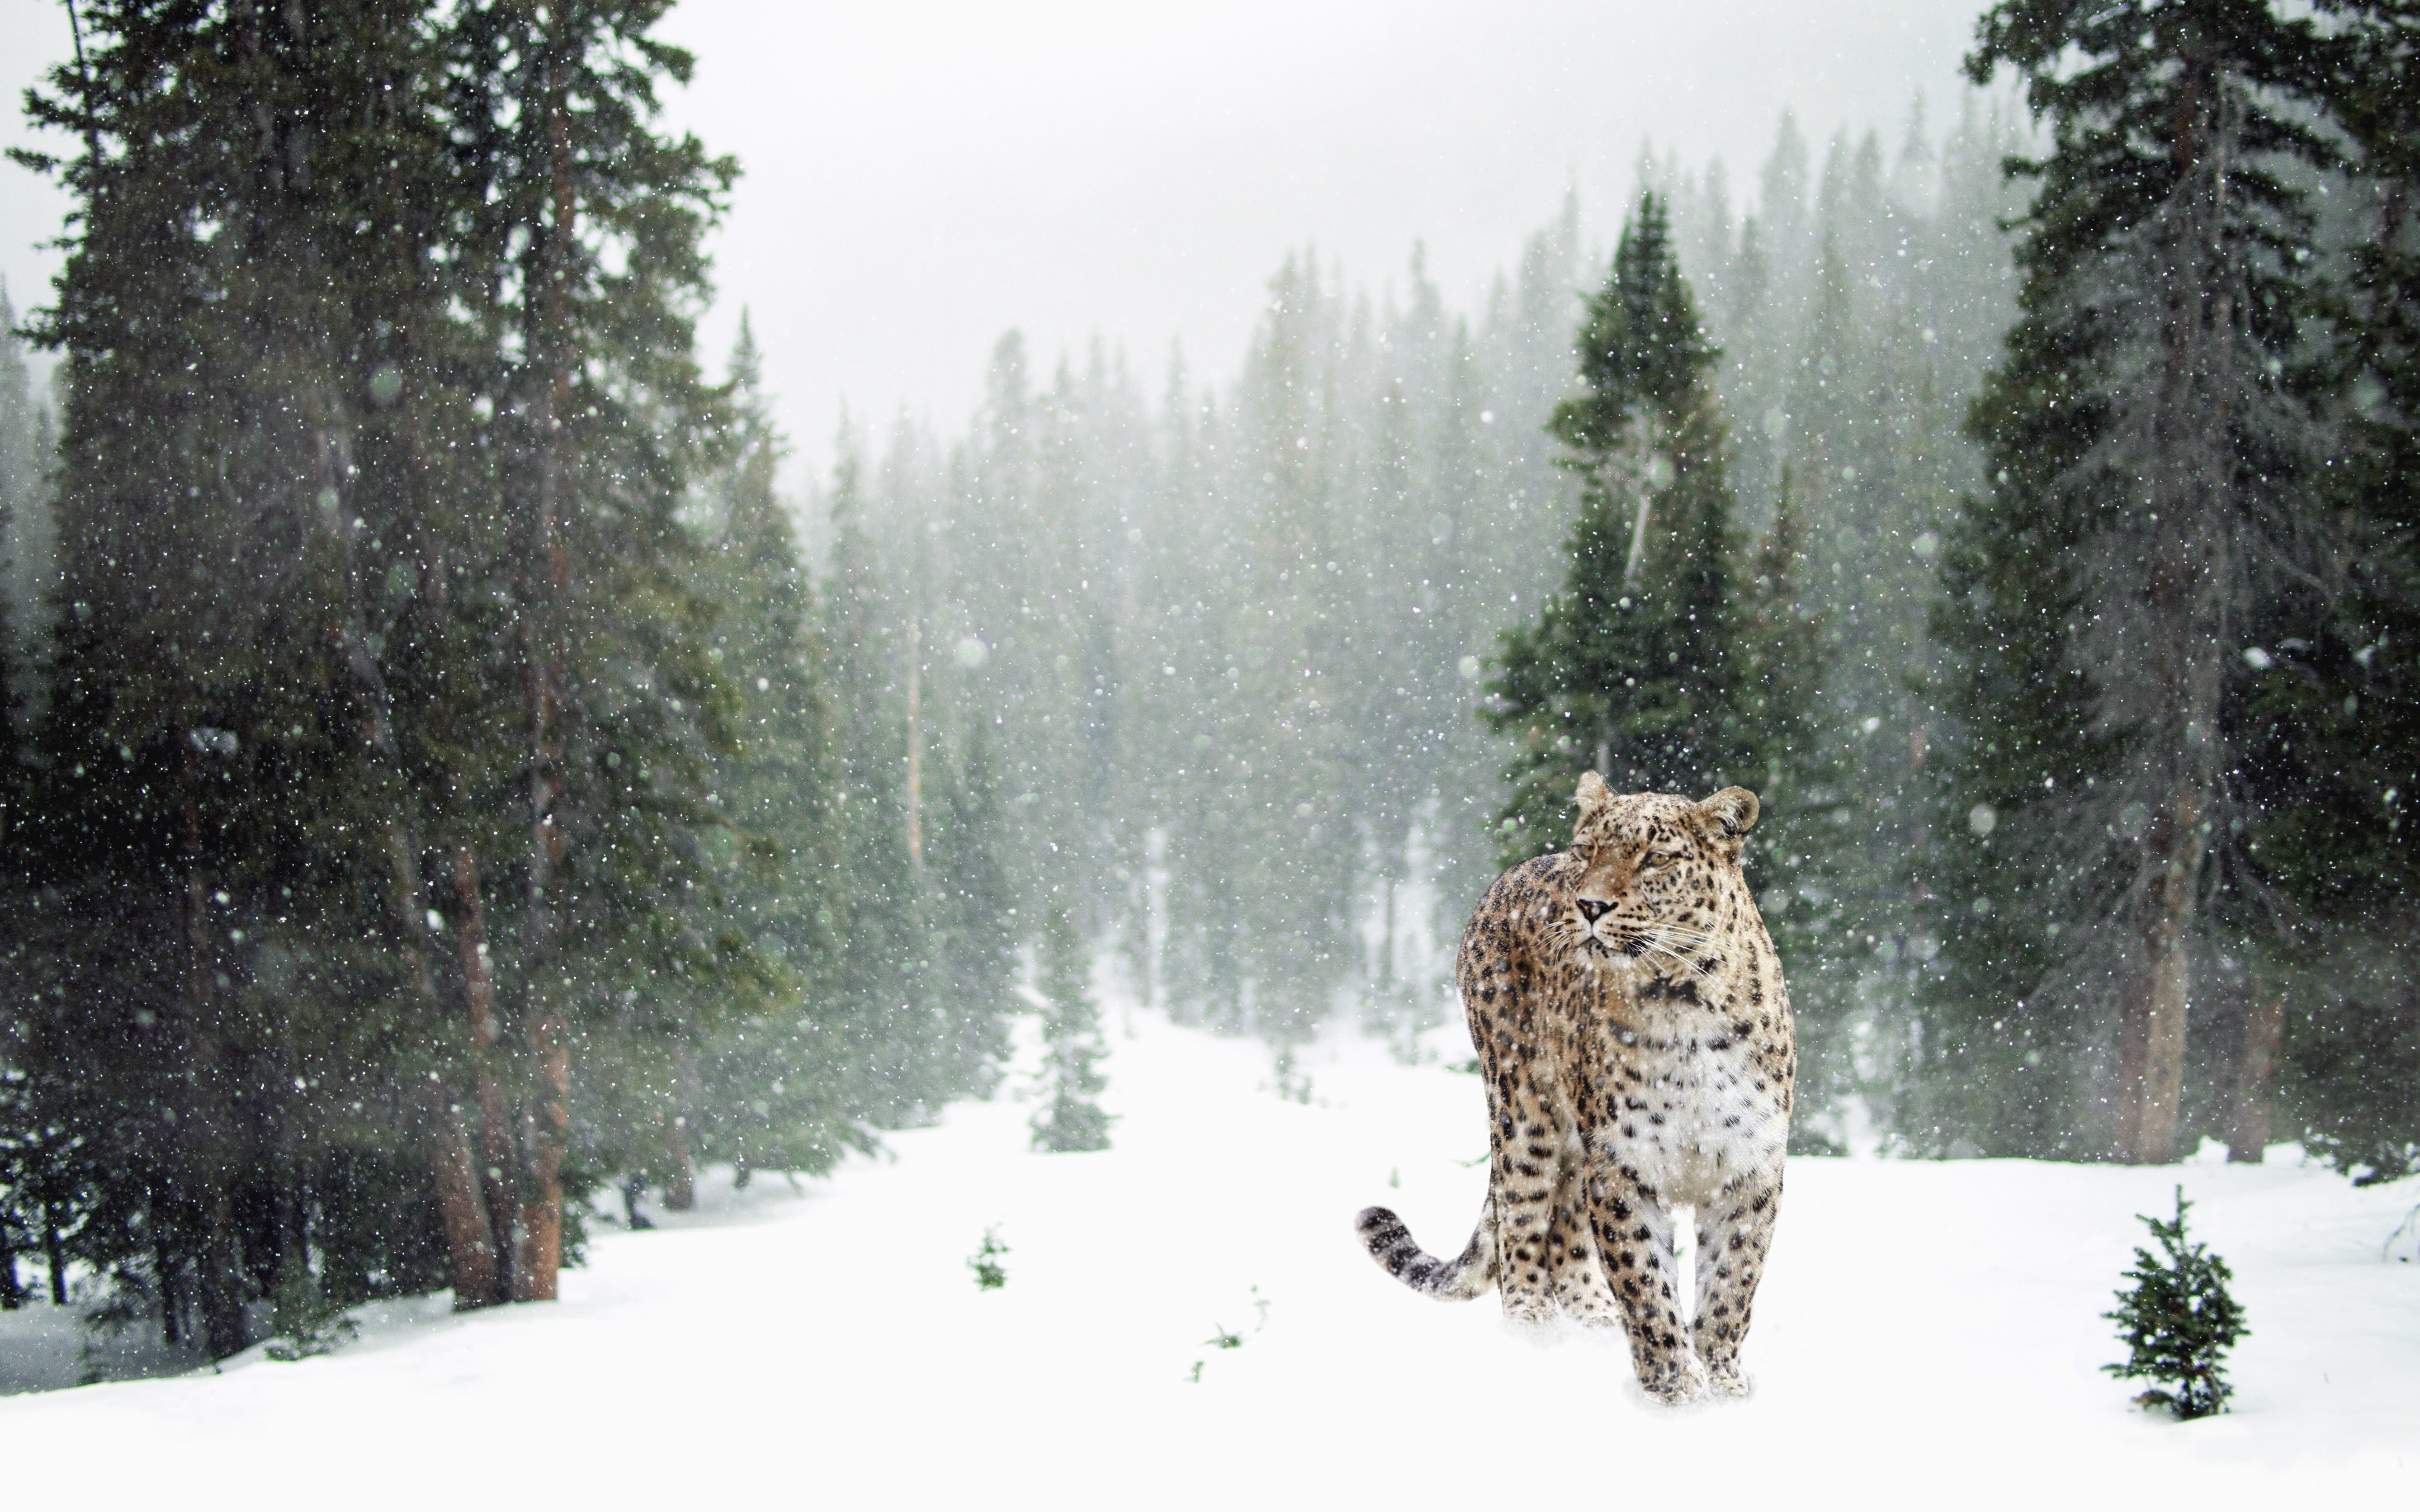 Hd Wallpaper Iphone 7 Free Picture Tree Snow Leopard Animal Predator